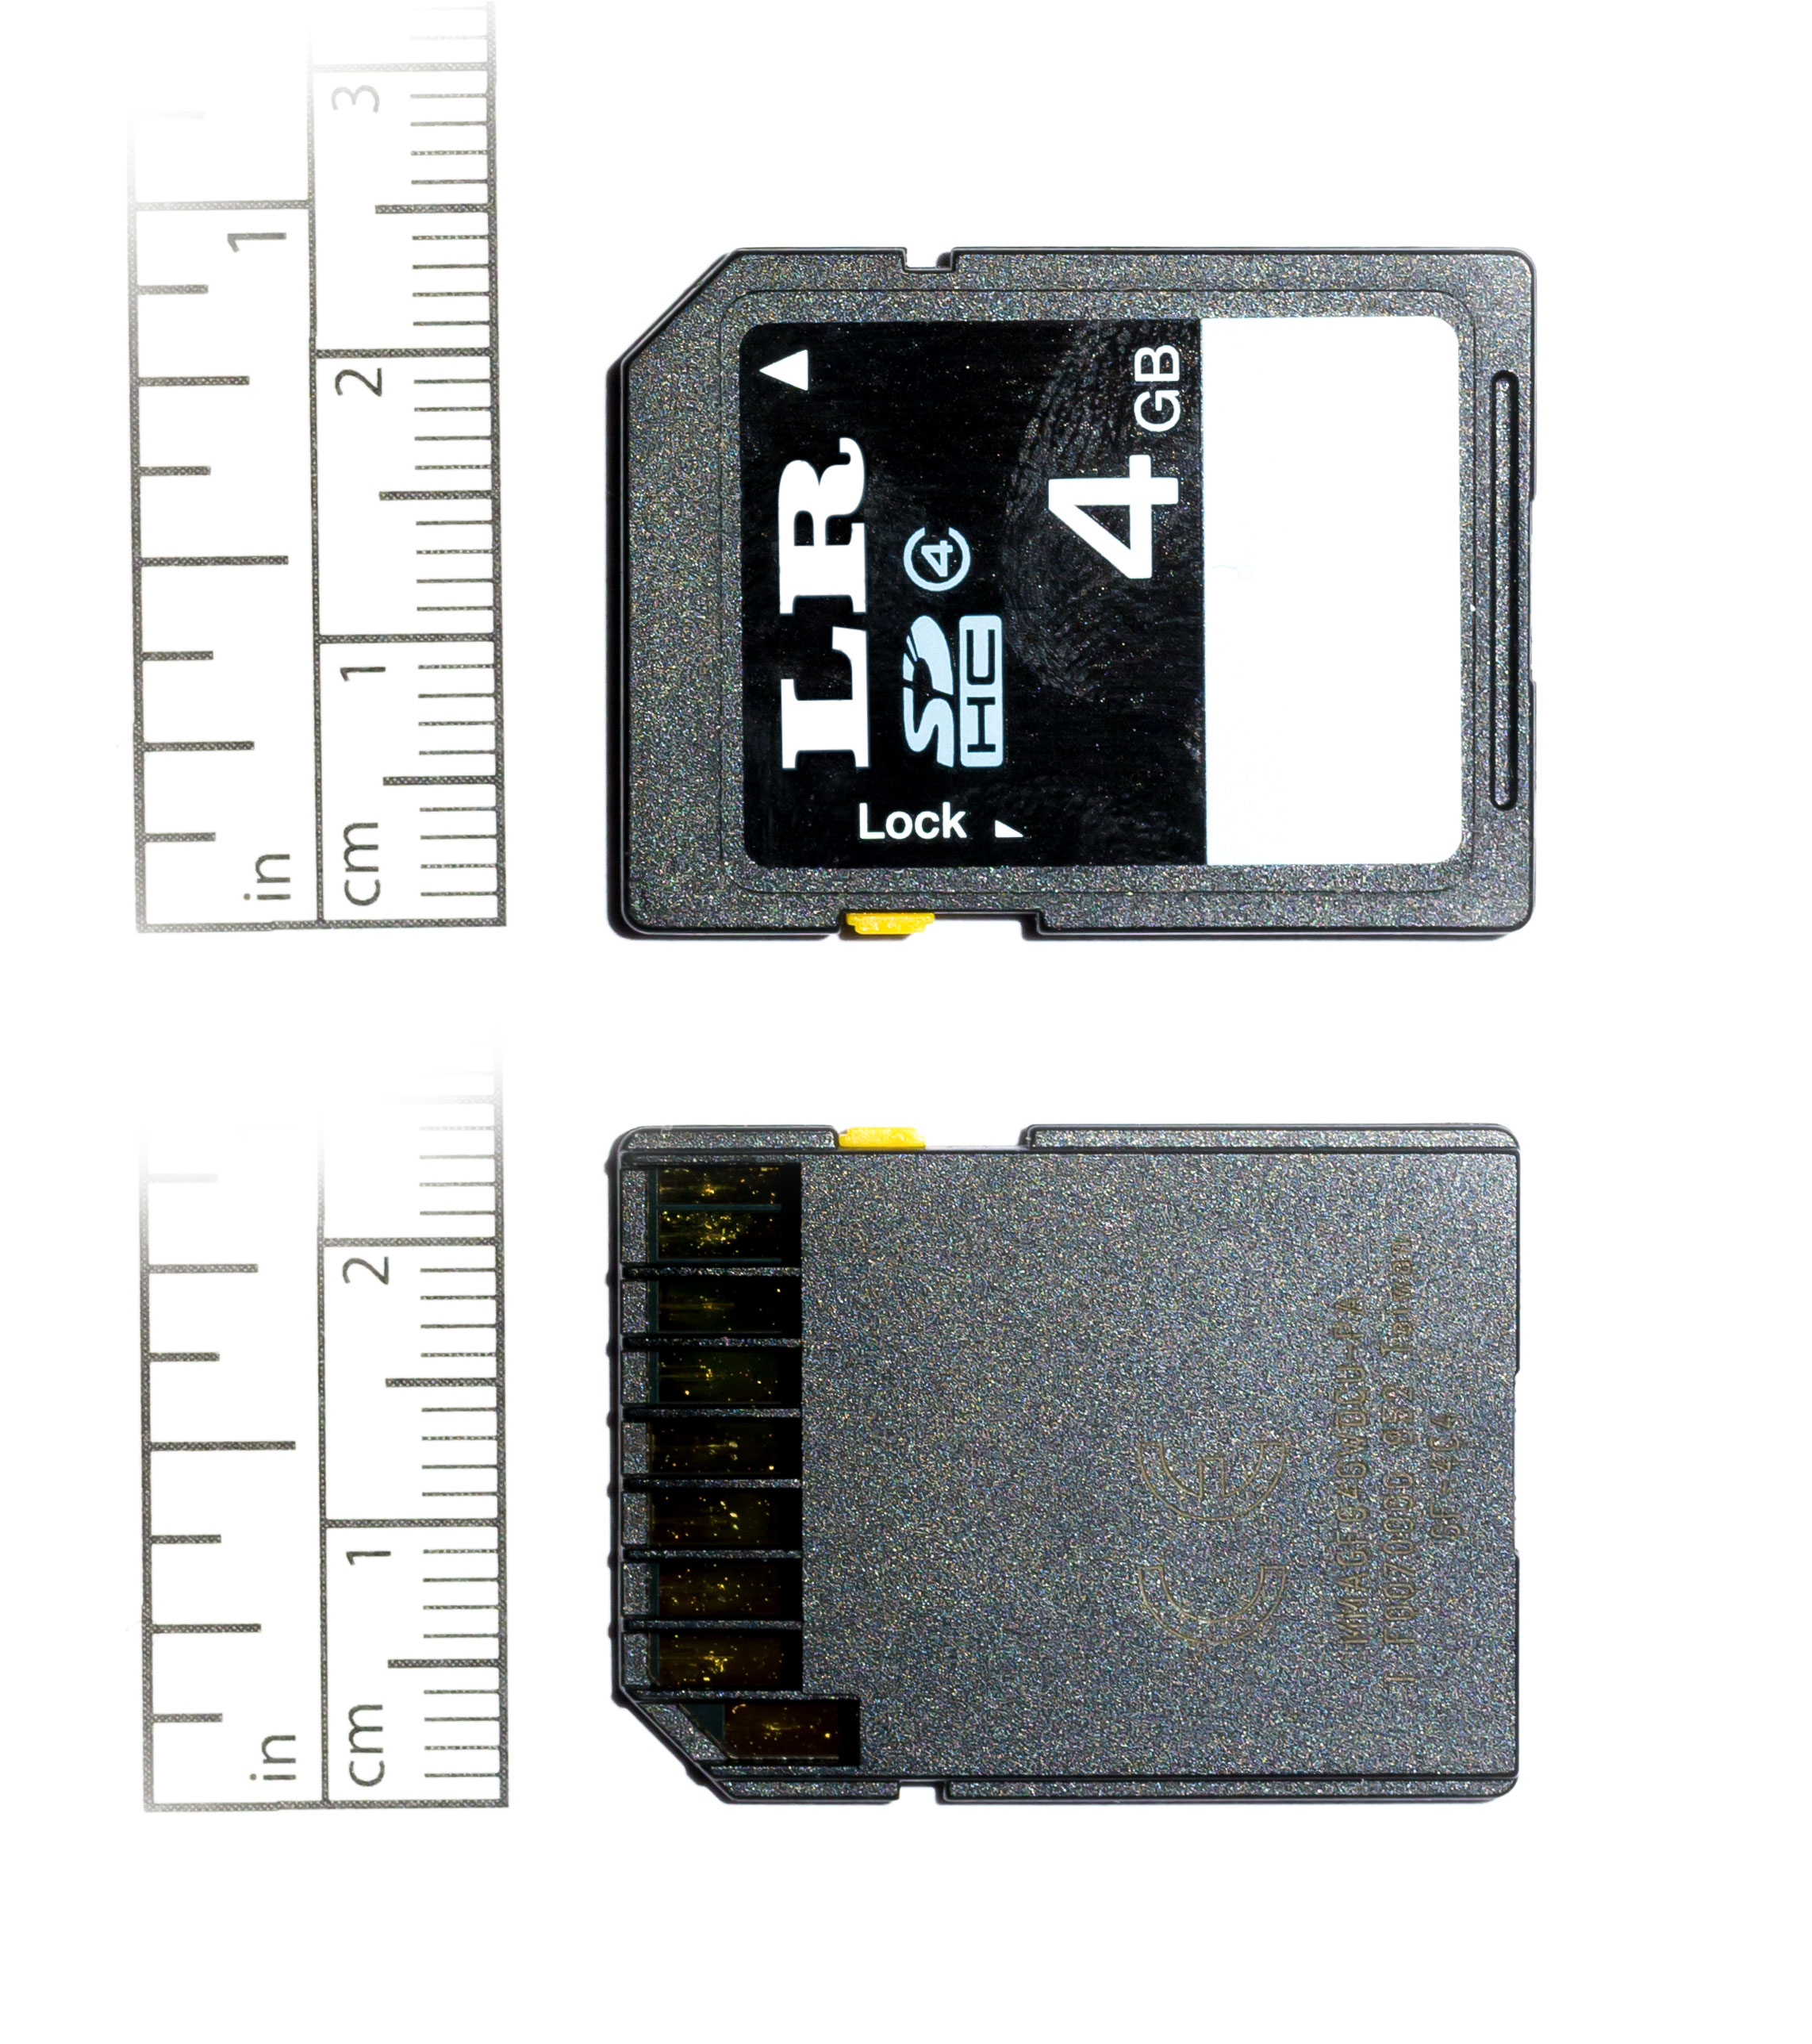 Accessing The Sd Card Part 2 Lucky Resistor Lets Take A Look At Spi Timing Diagram For Mode 1 We Can Communicate With This Microcontroller Using Different Interfaces One I Will Describe Here Is Interface